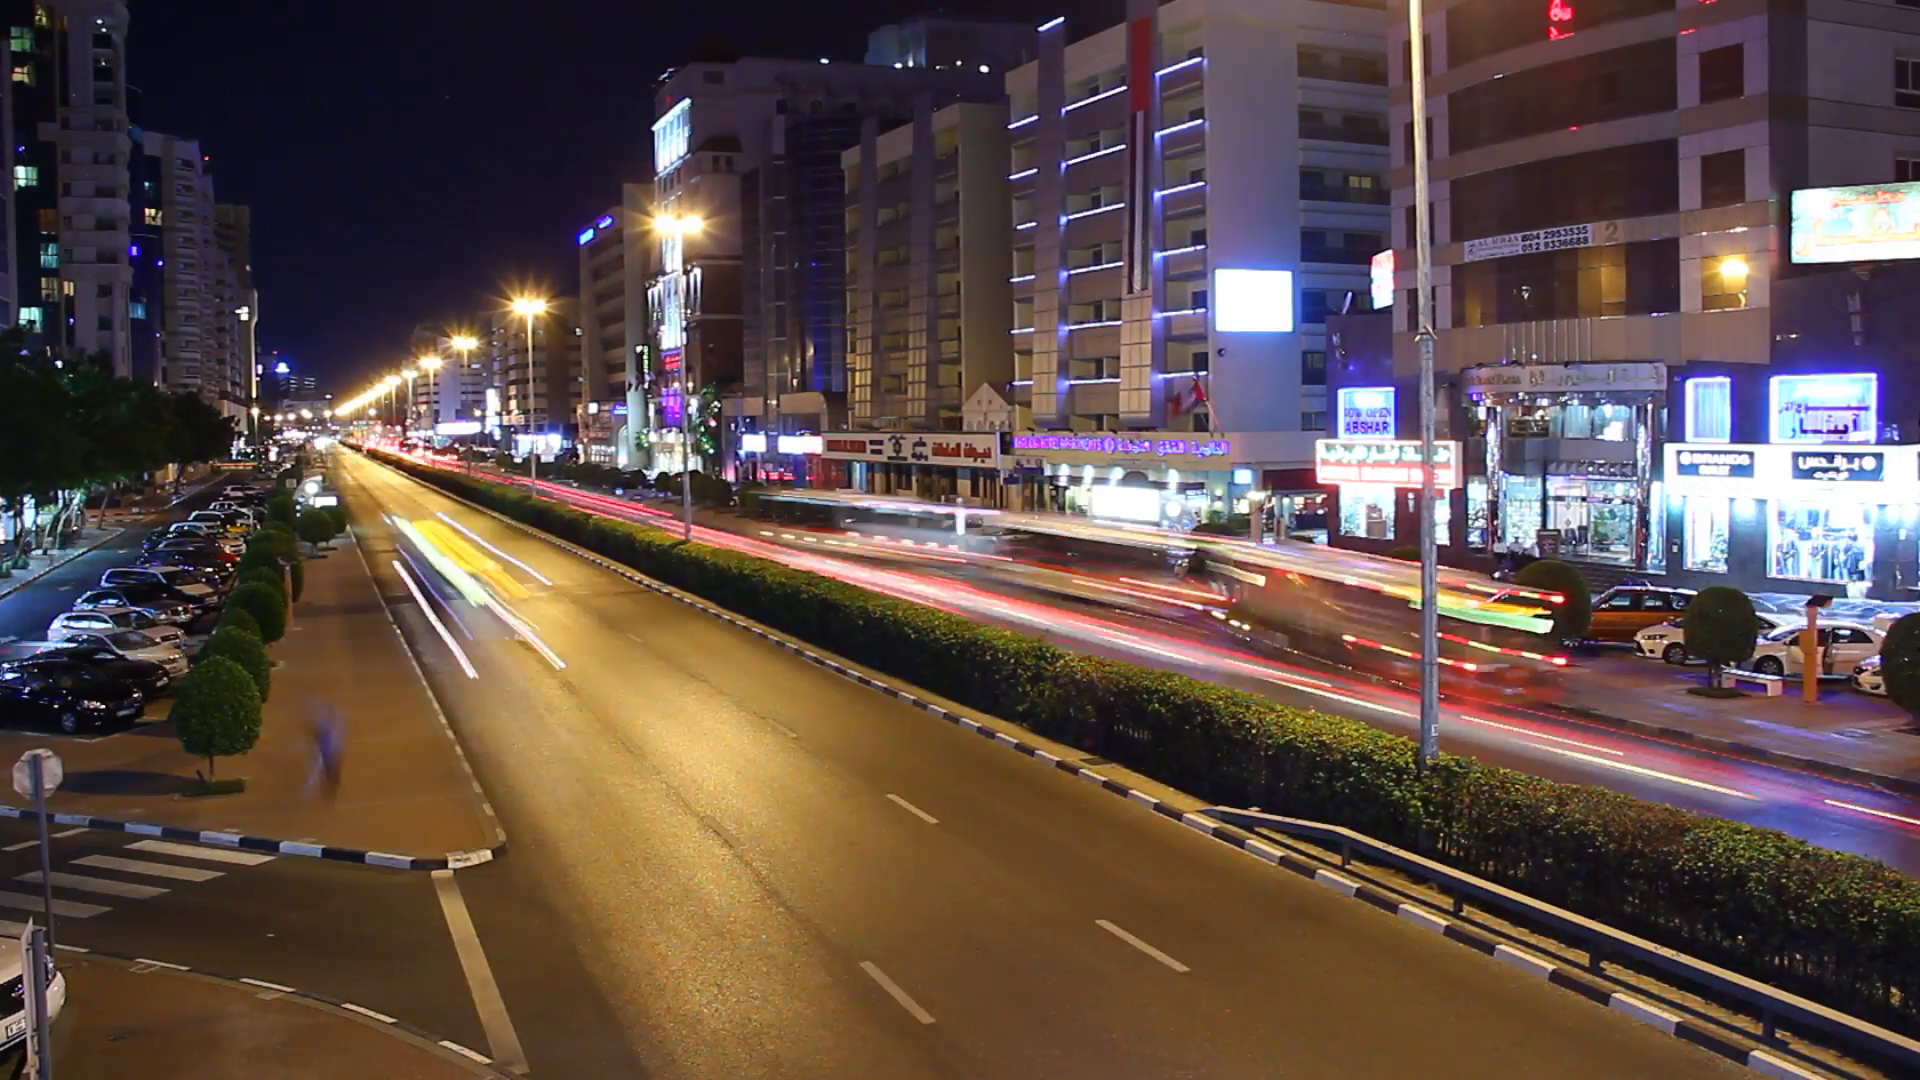 Very fast traffic move at night city street, perspective time lapse ...